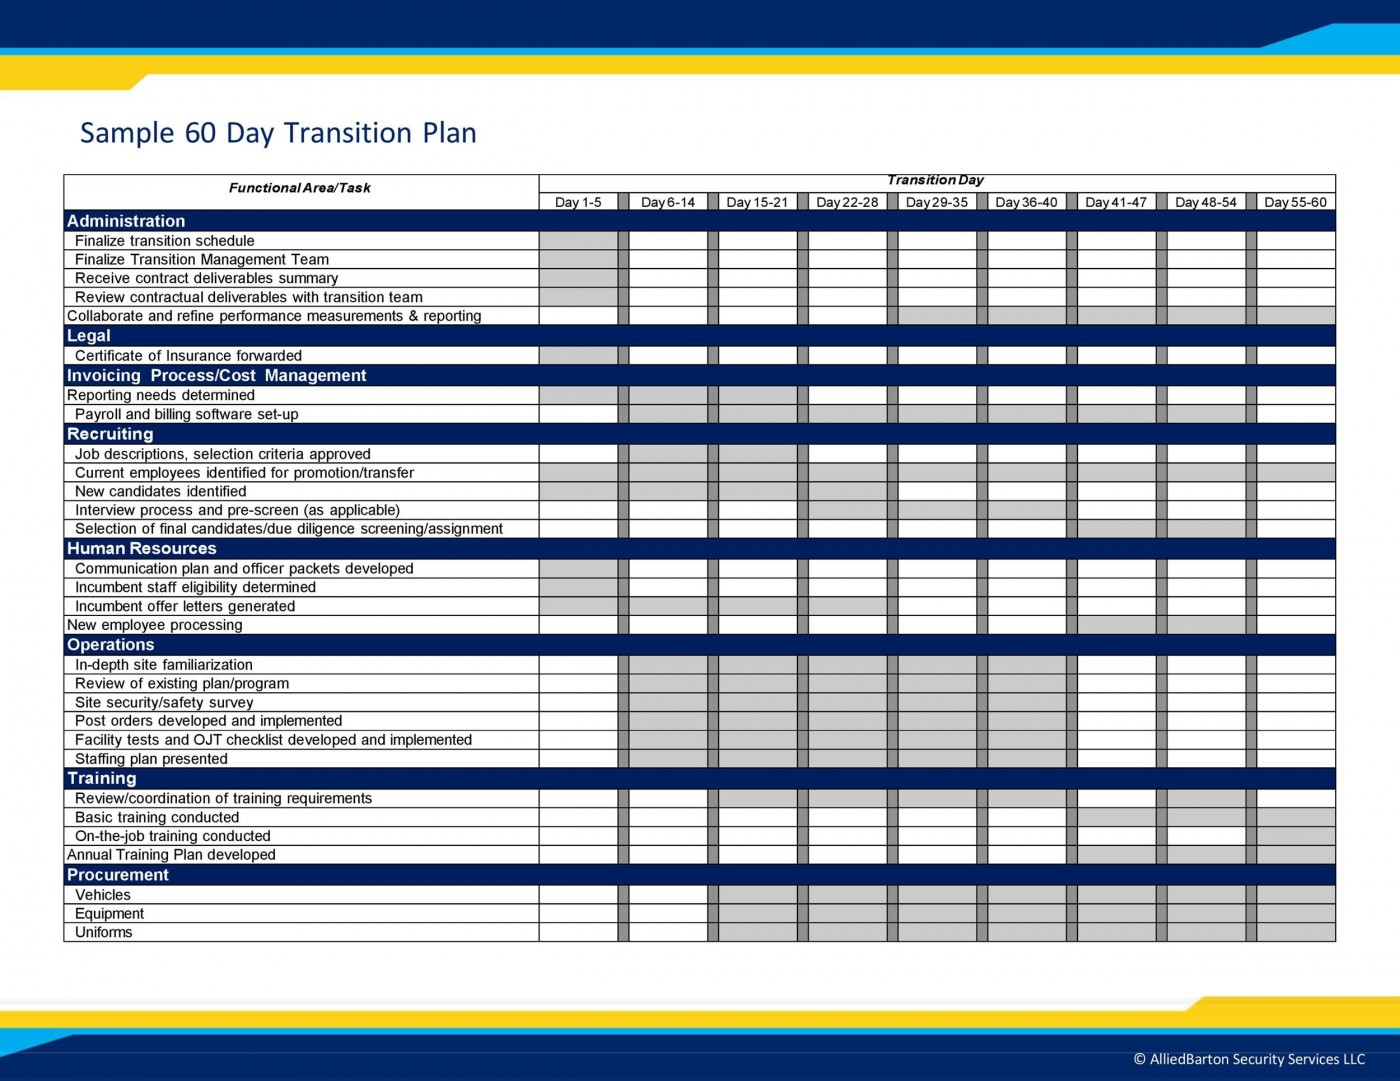 009 Fascinating Software Project Transition Plan Sample High Resolution  Template Excel1400